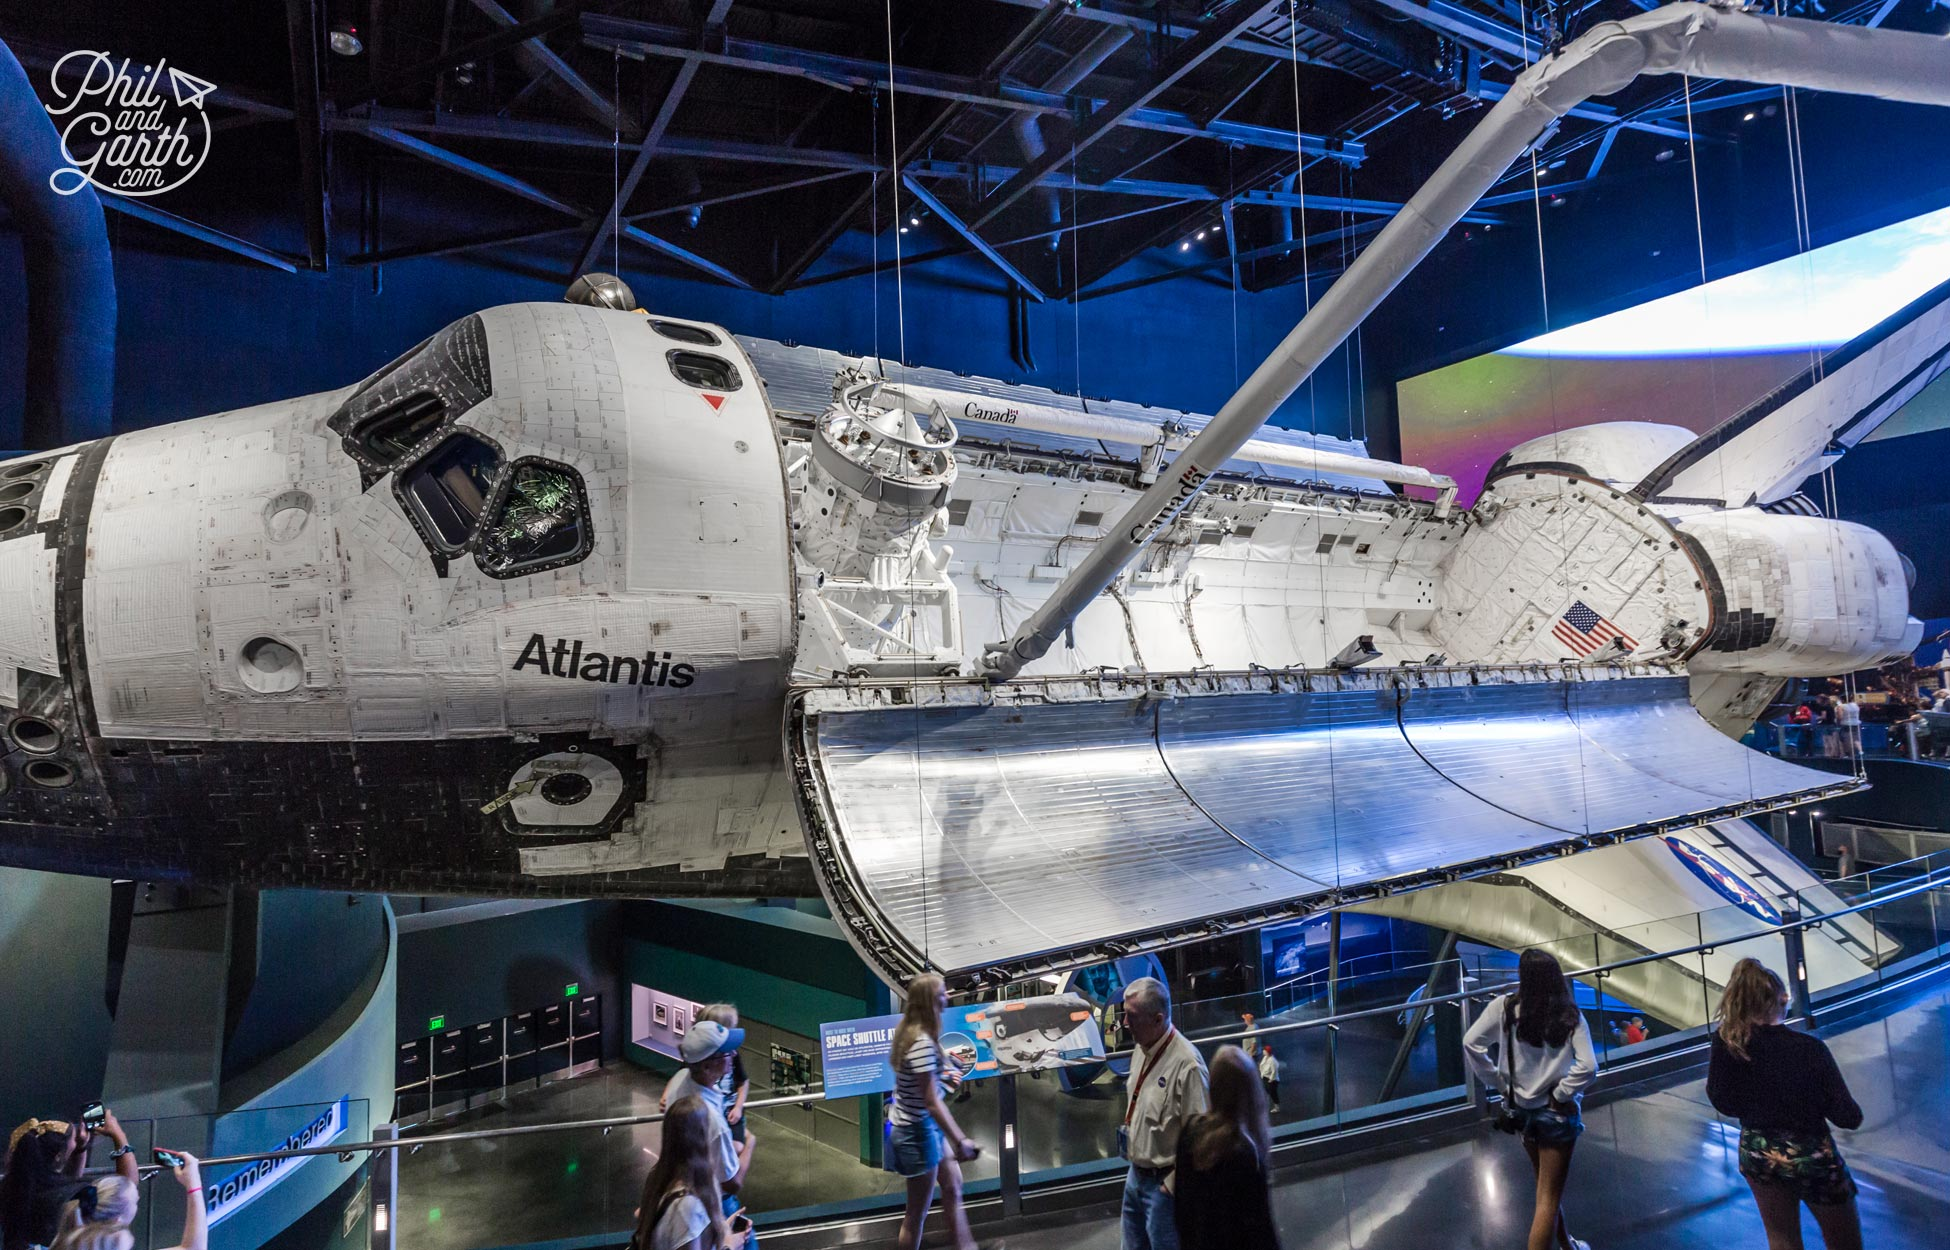 Space Shuttle Atlantis is suspended and angled as if floating in space